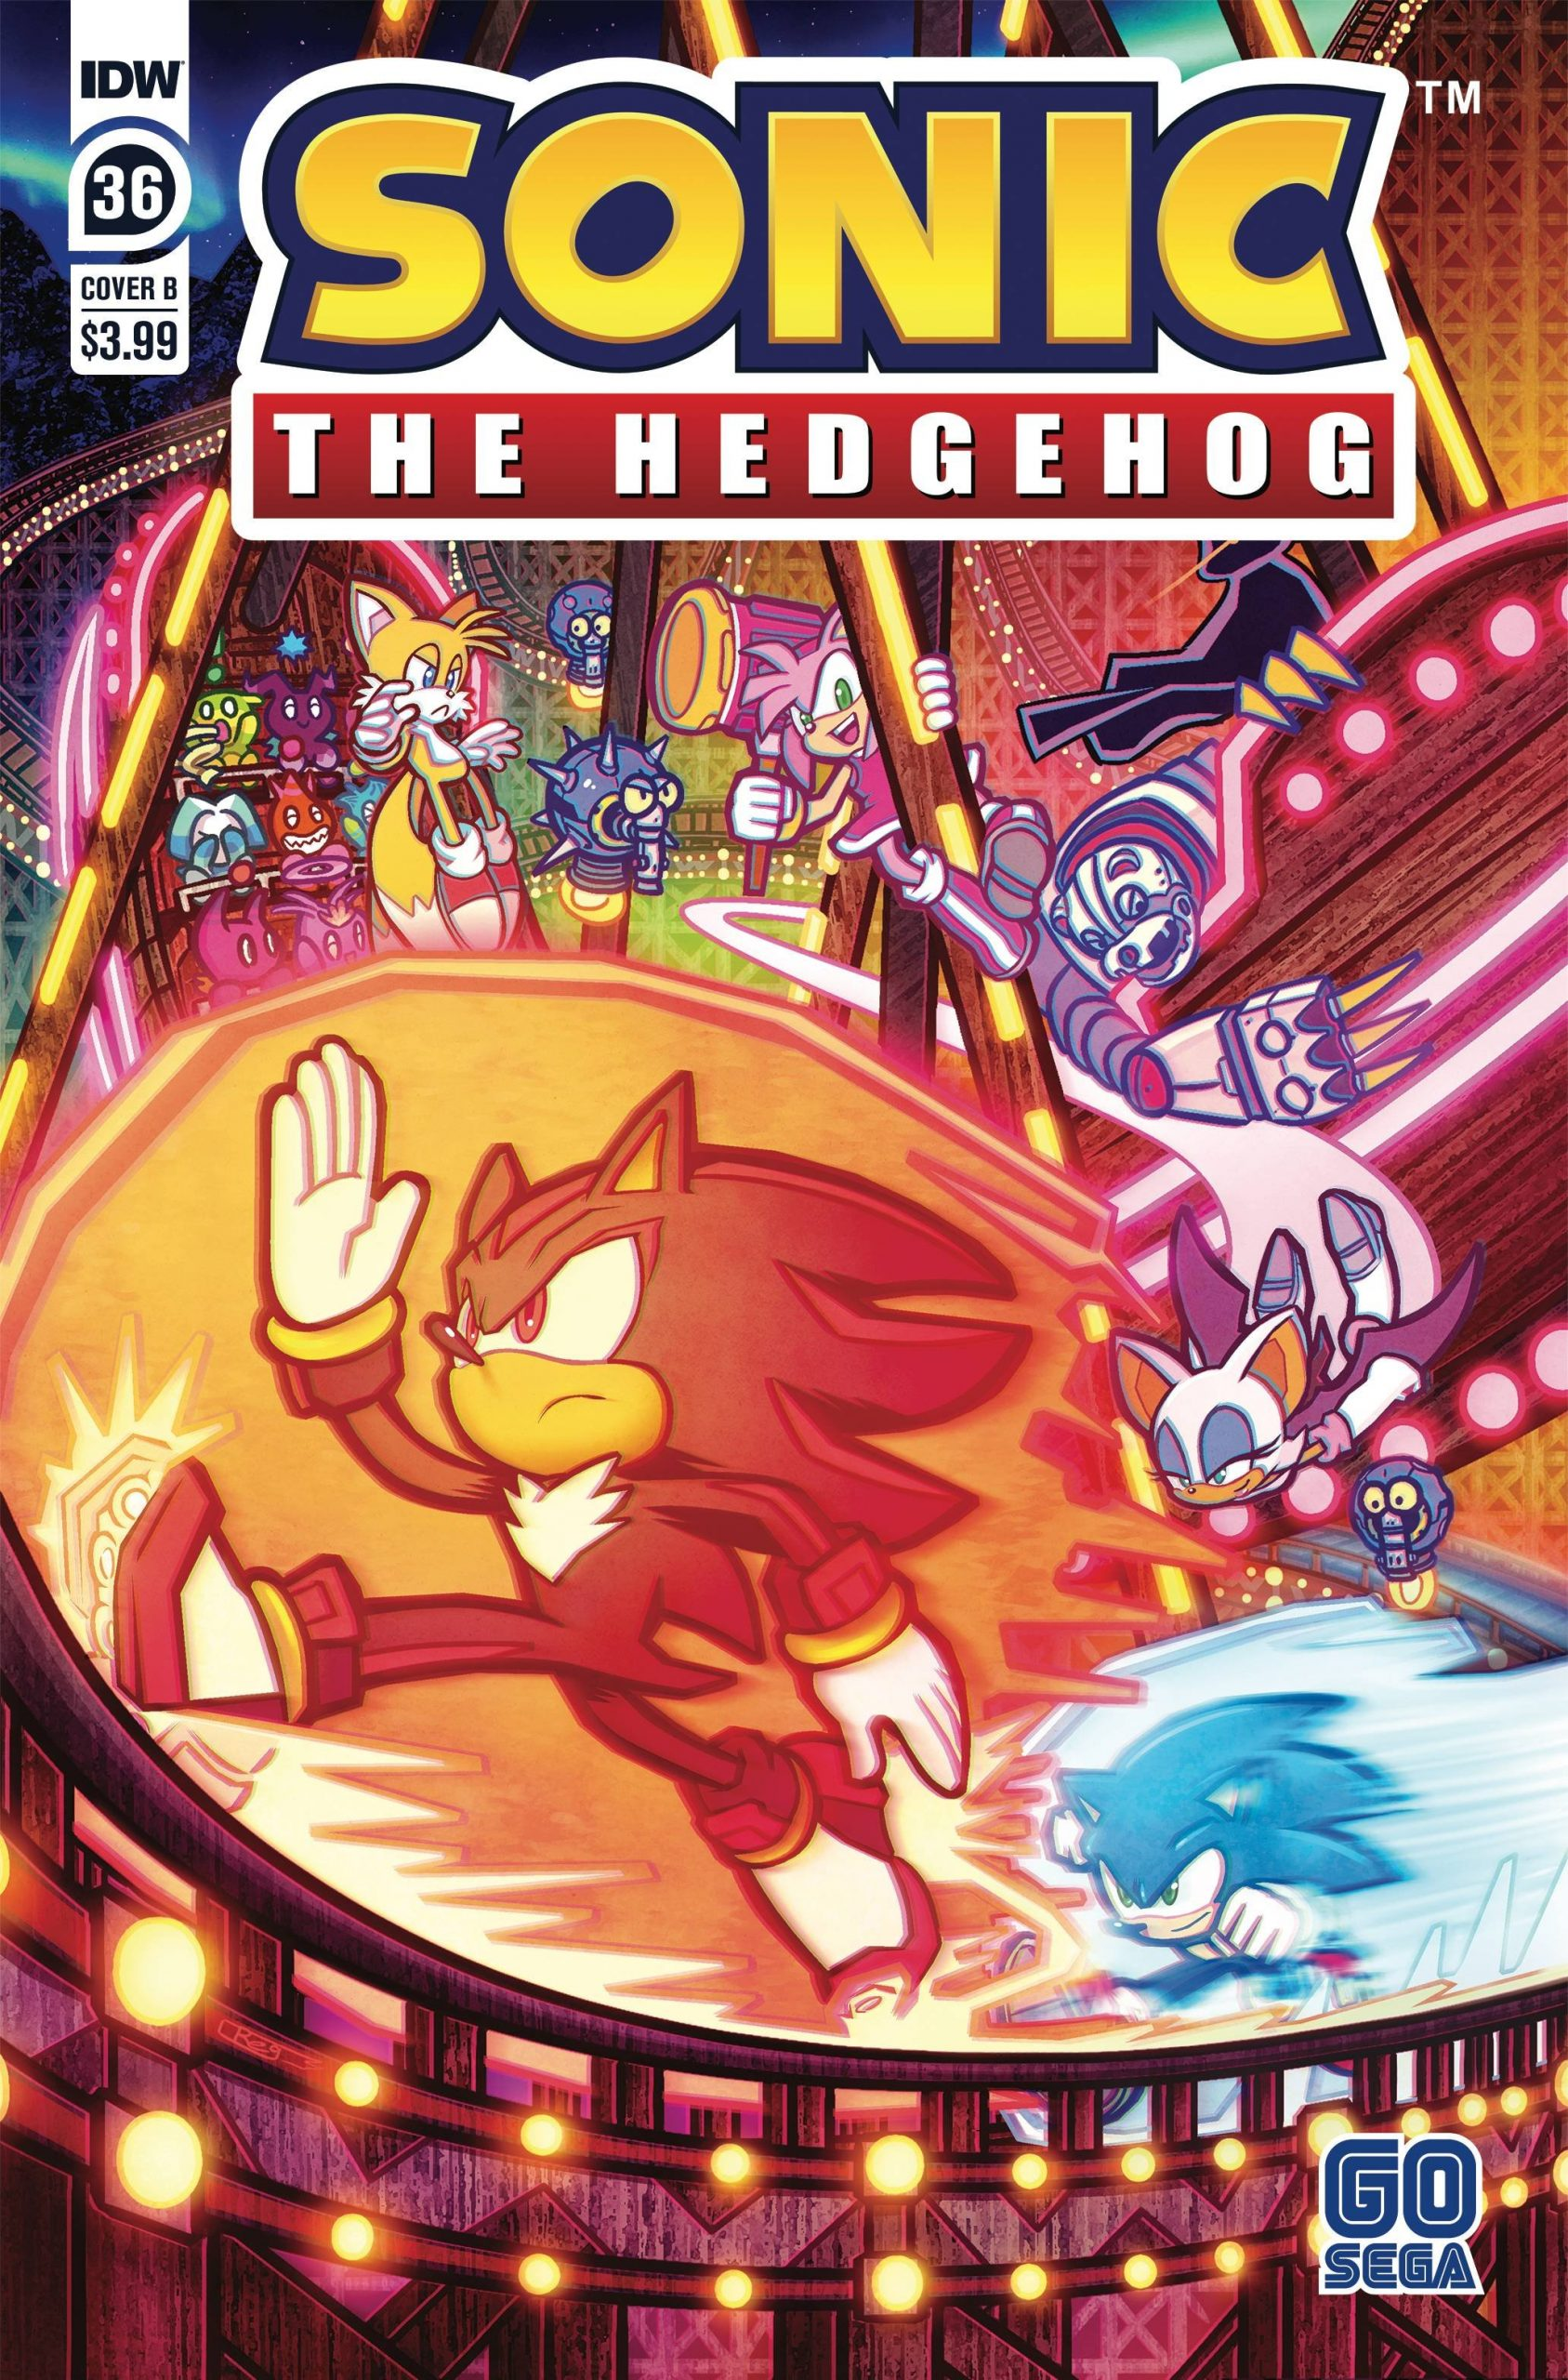 Sonic The Hedgehog #36